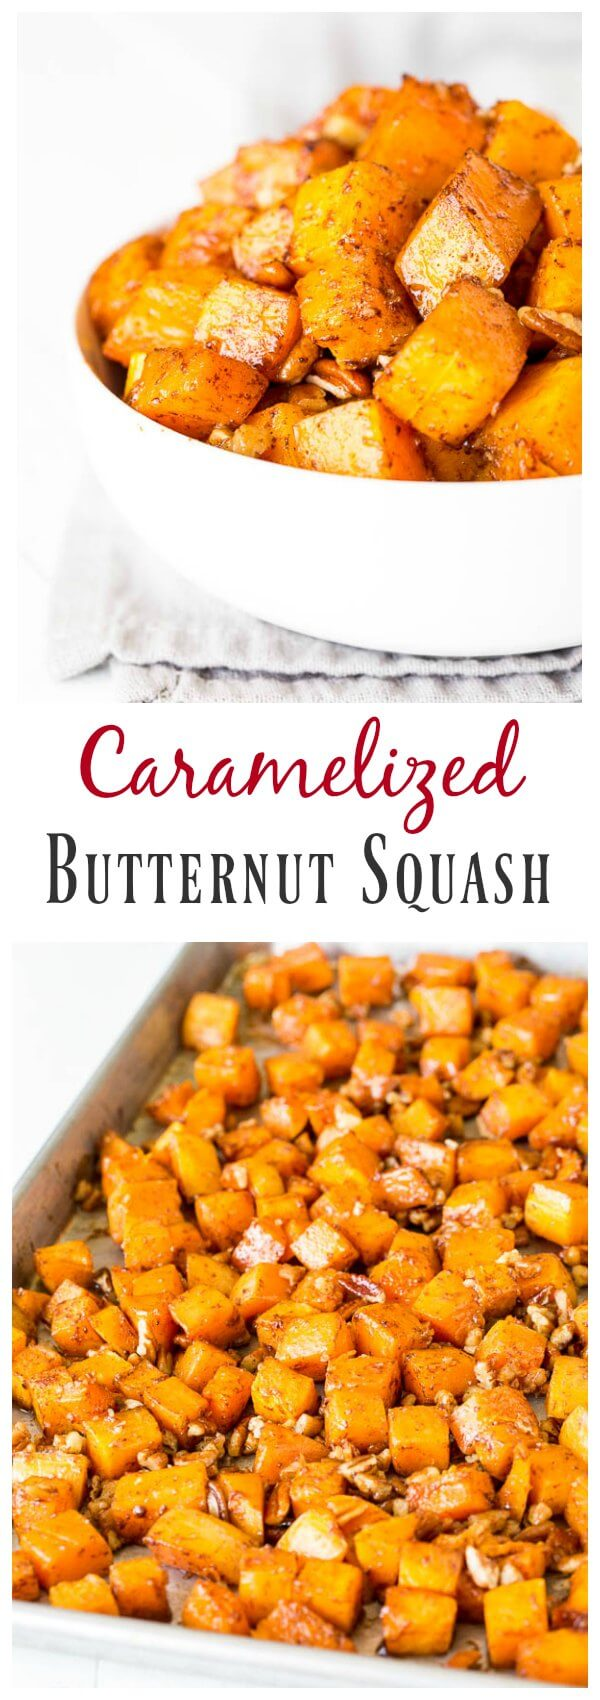 Irresistibly buttery and sweet, this roasted butternut squash with cinnamon feeds a crowd, which makes it perfect addition to your holiday menu!h